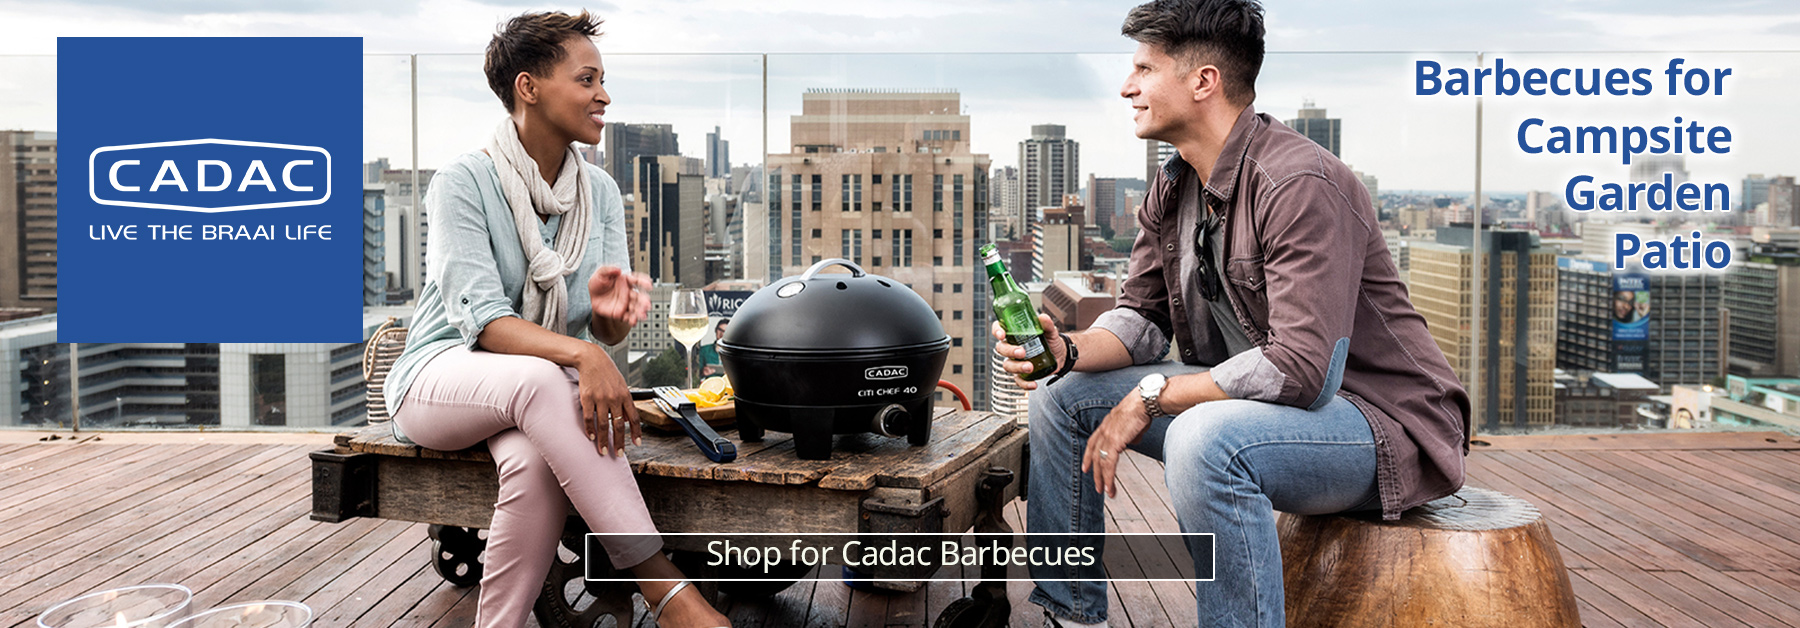 Cadac Barbecues for Garden, Patio and Campsite